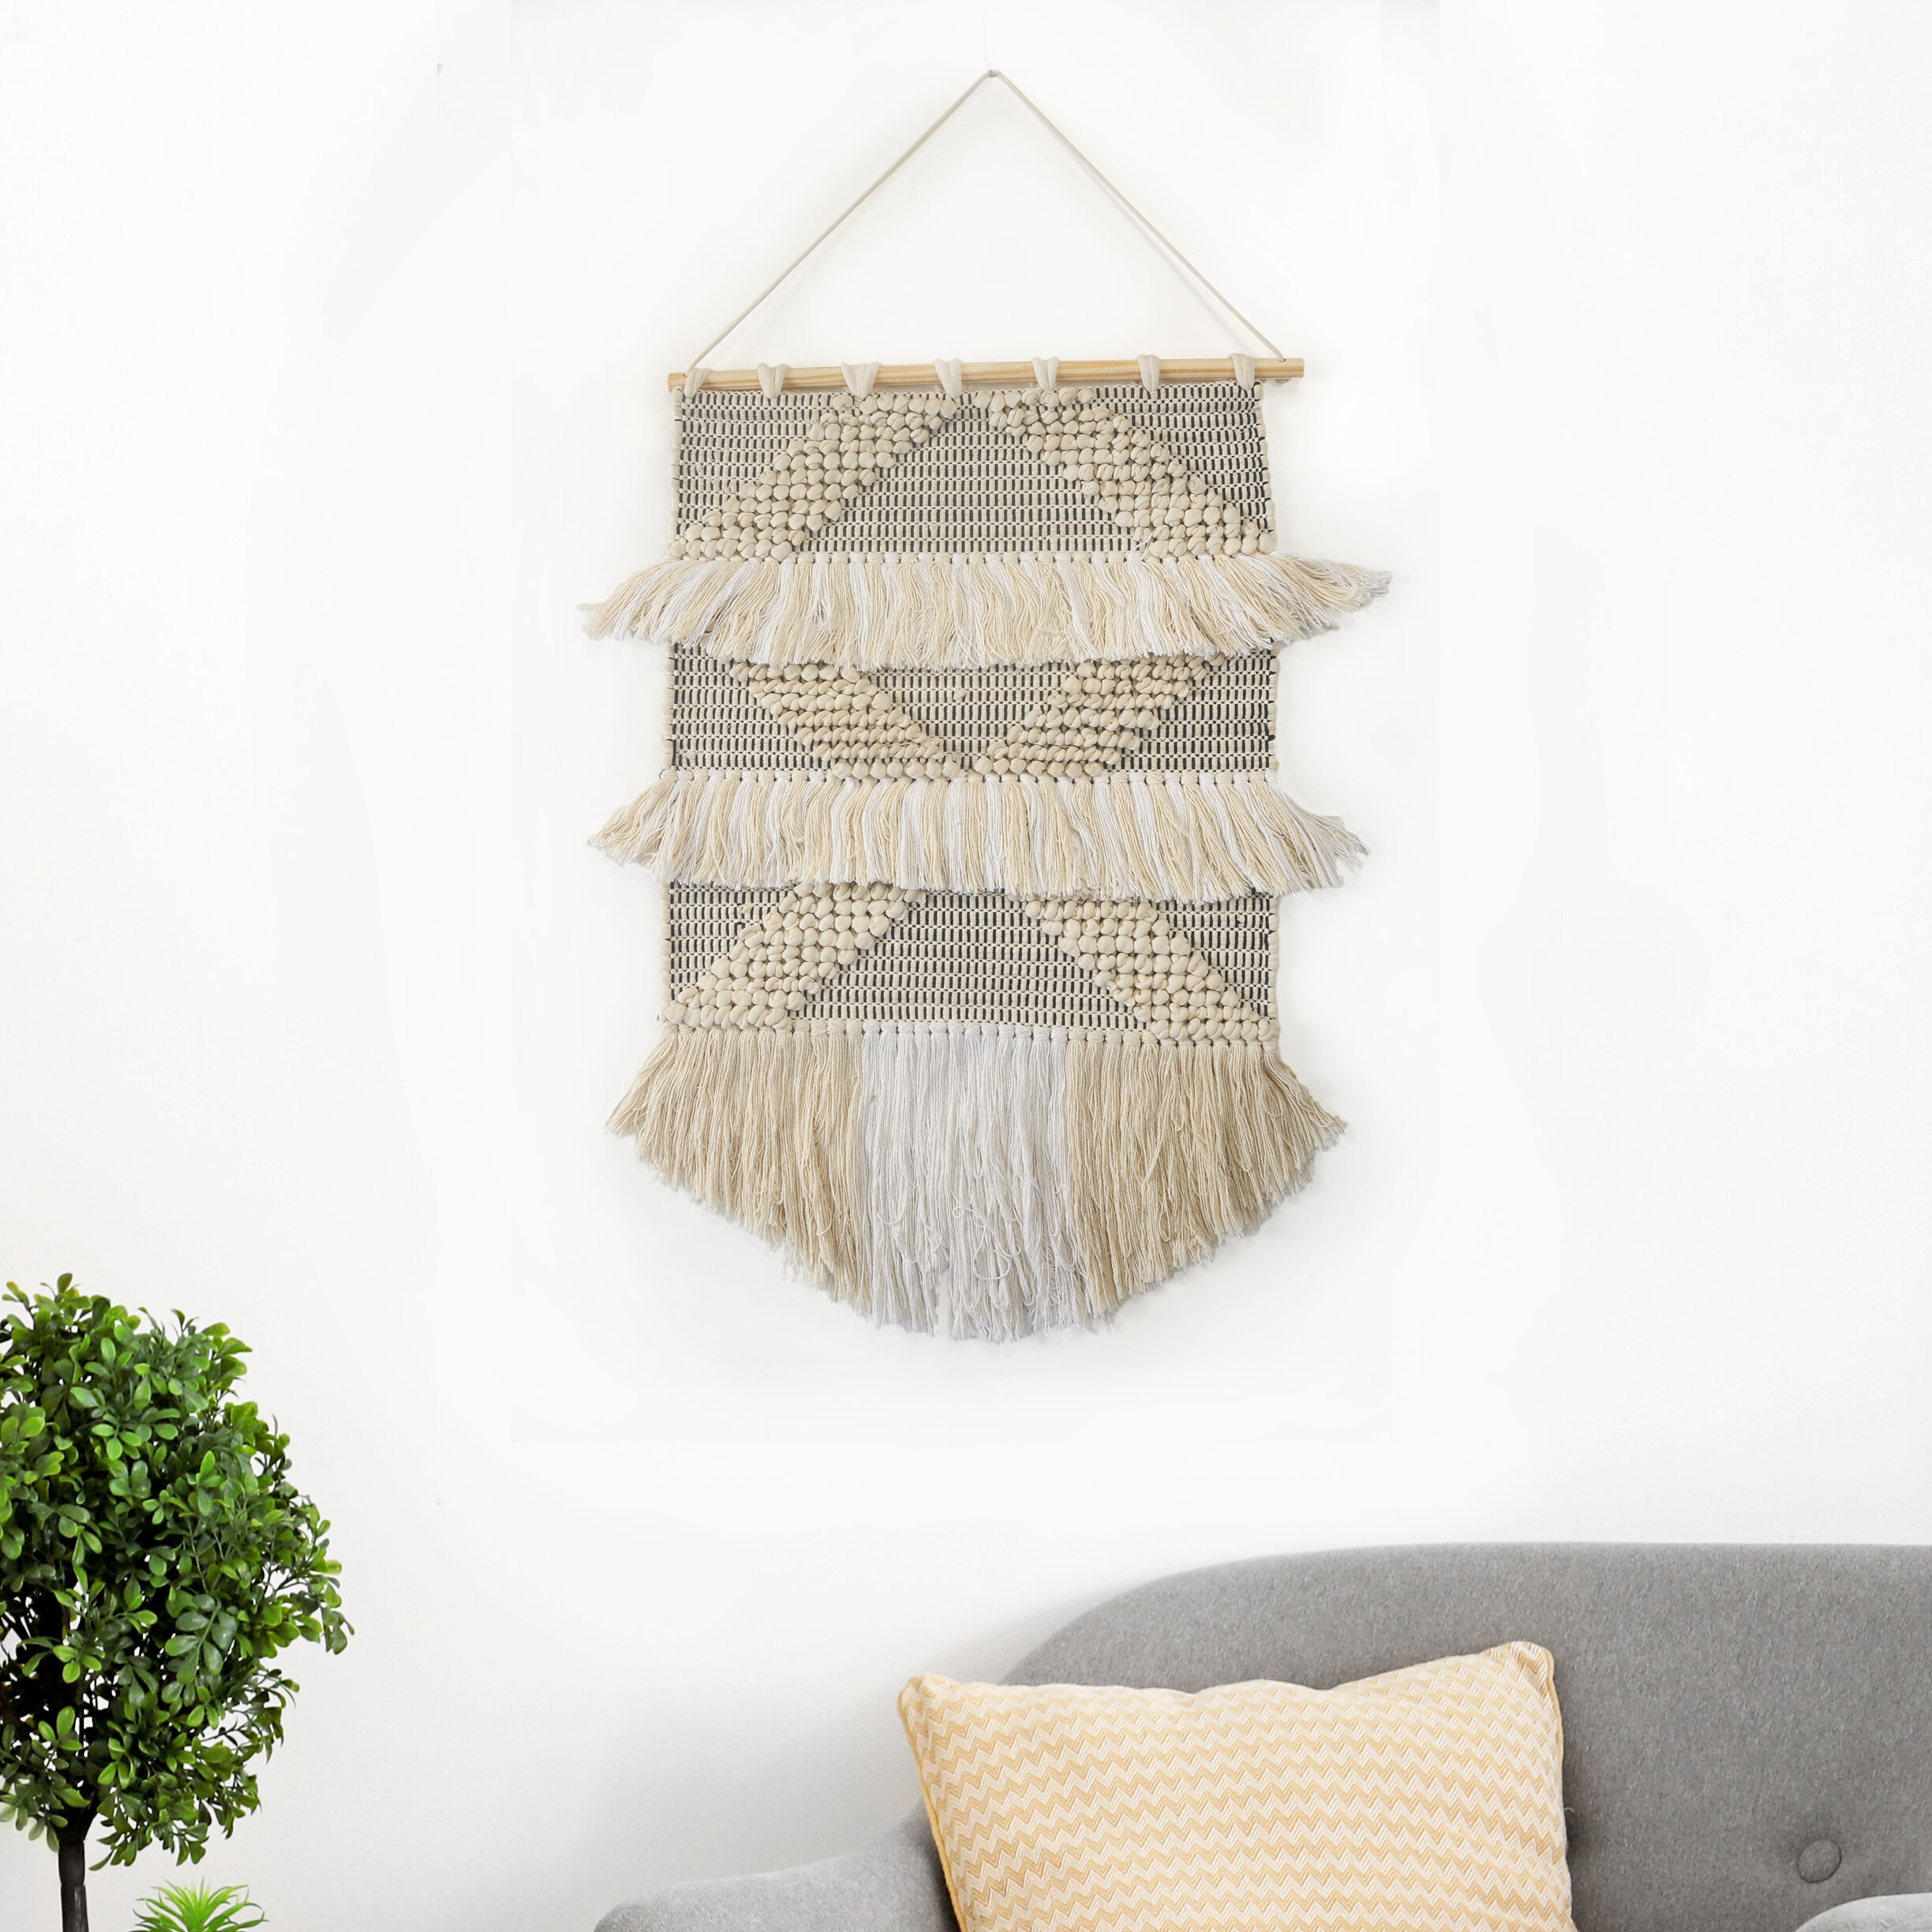 Cotton Diamond Tufted And Fringed Wall Hanging With Hanging Accessories Included Regarding Most Recently Released Blended Fabric Southwestern Bohemian Wall Hangings (View 14 of 20)